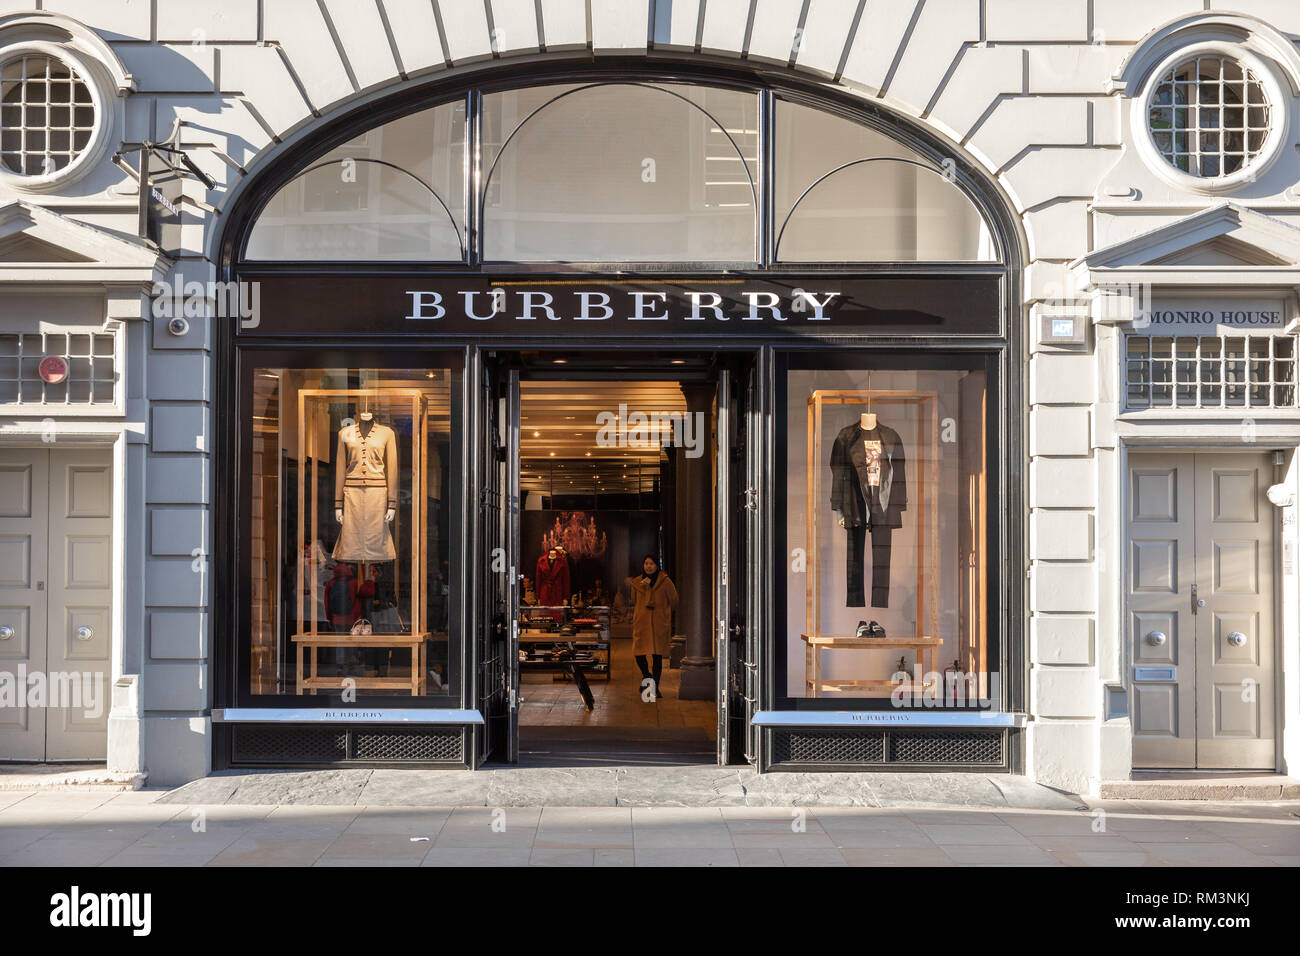 The Burberry Store, - Stock Image